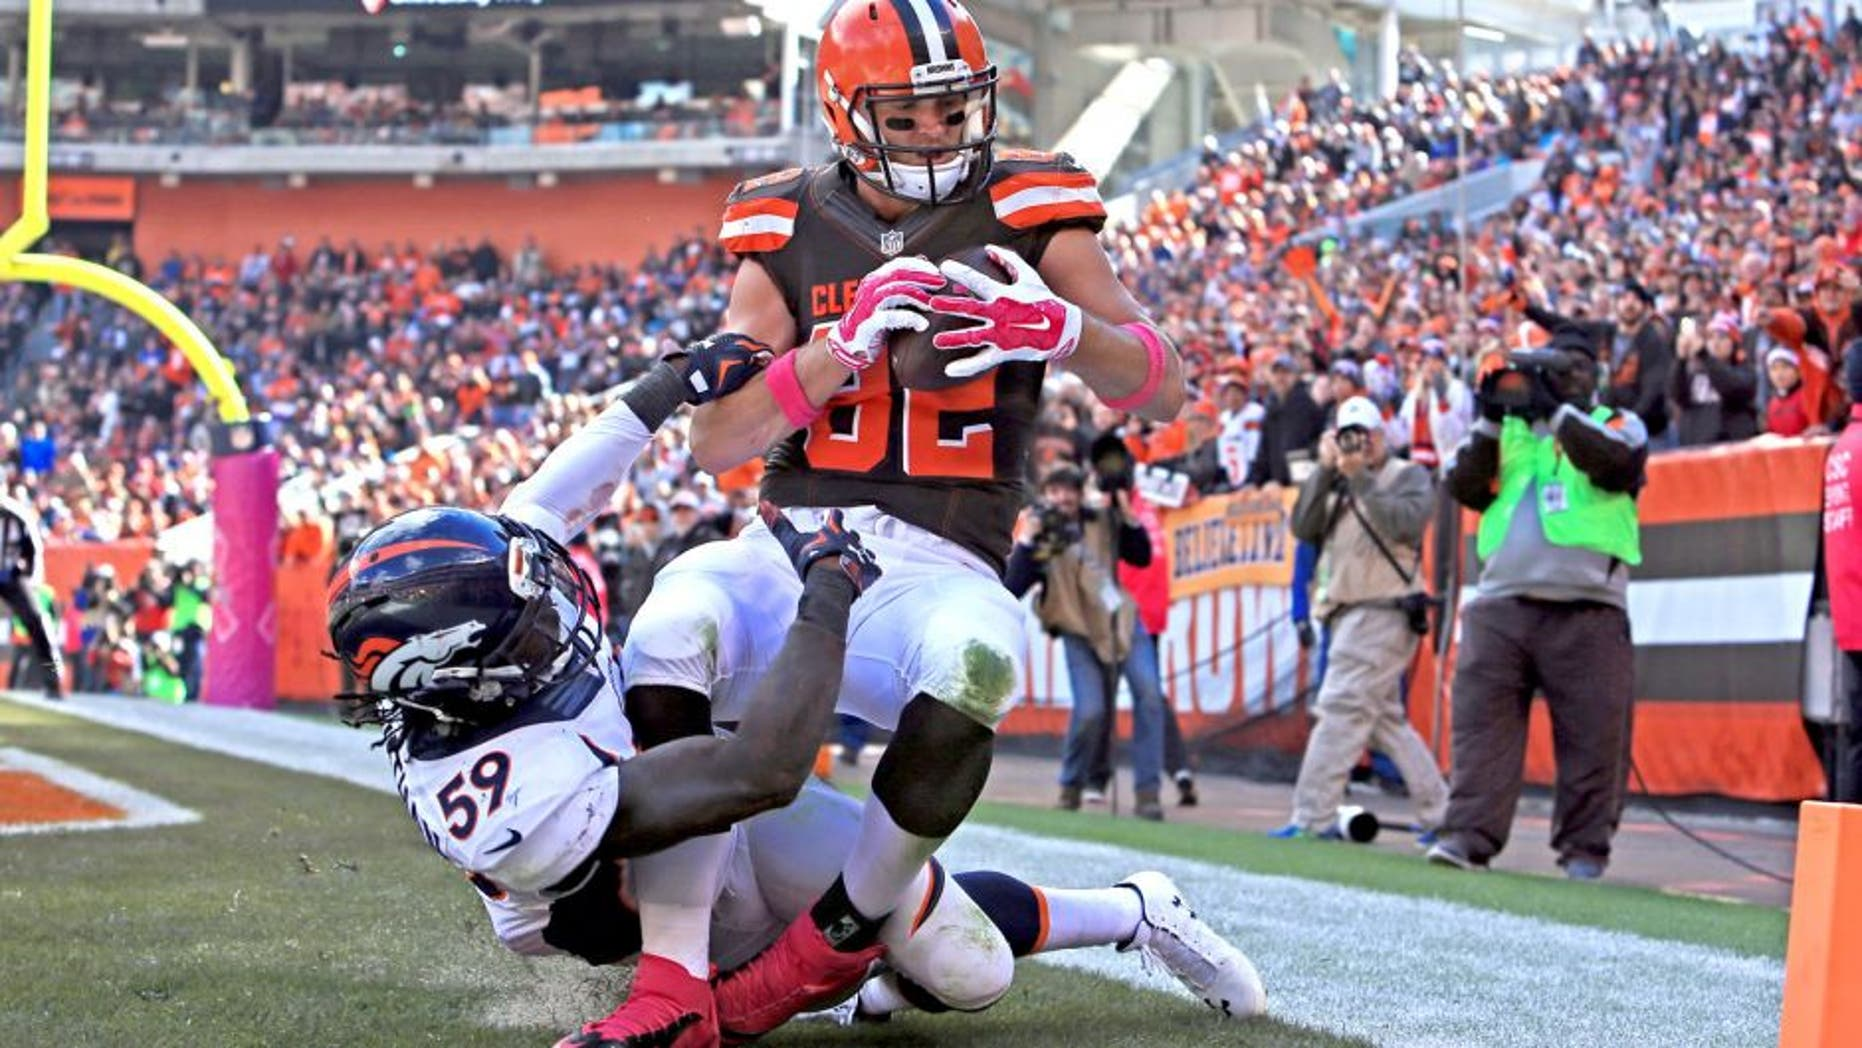 CLEVELAND, OH - OCTOBER 18: Tight end Gary Barnidge #82 of the Cleveland Browns catches a pass for a touchdown while being defended by inside linebacker Danny Trevathan #59 of the Denver Broncos during the third quarter at Cleveland Browns Stadium on October 18, 2015 in Cleveland, Ohio. (Photo by Andrew Weber/Getty Images)